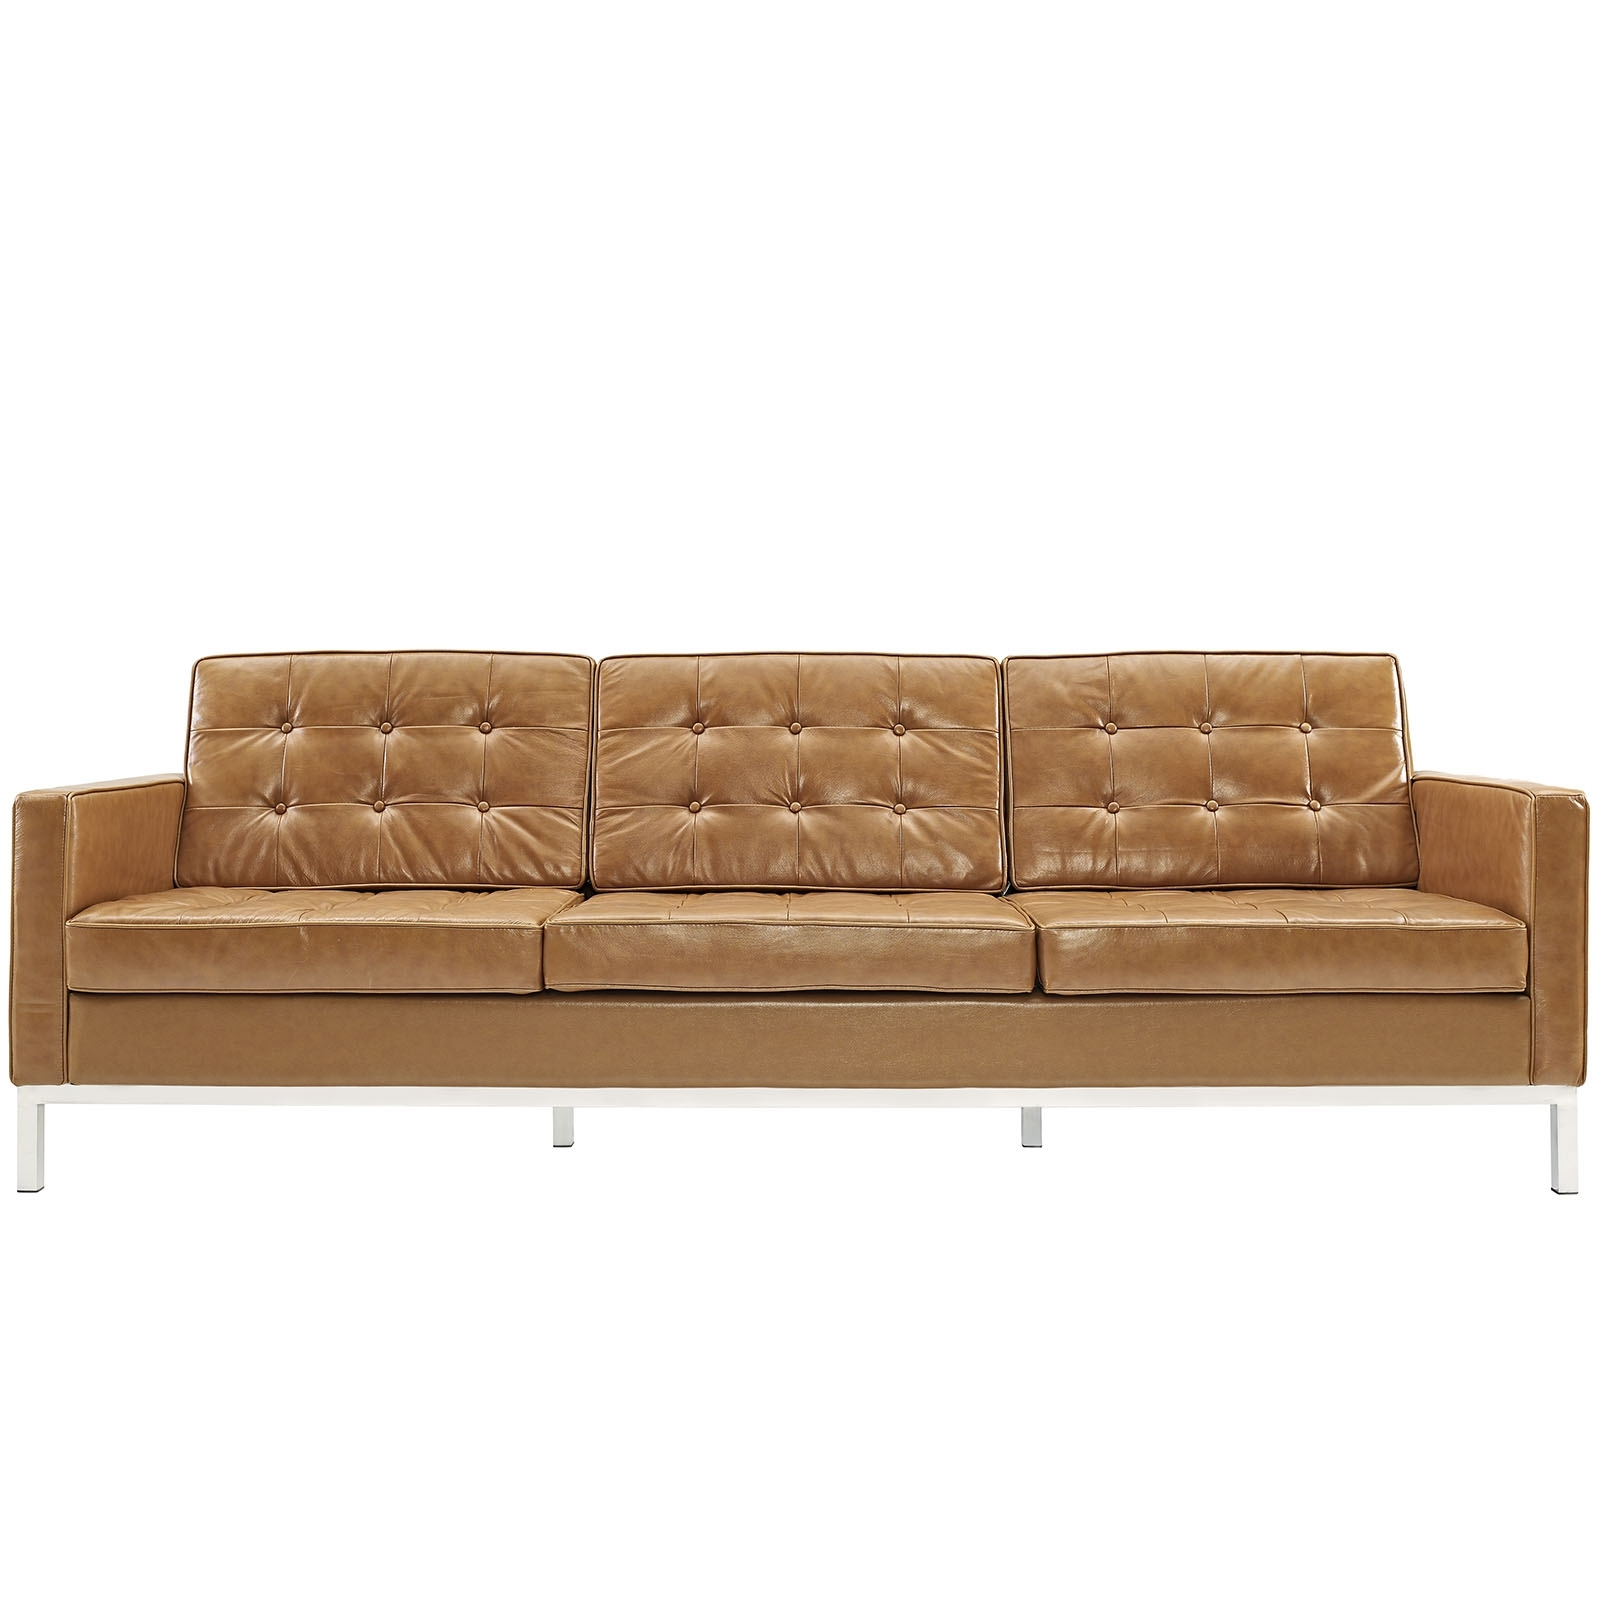 Best And Newest Florence Knoll Leather Sofas Regarding Florence Knoll Style Sofa Couch – Leather (View 1 of 20)